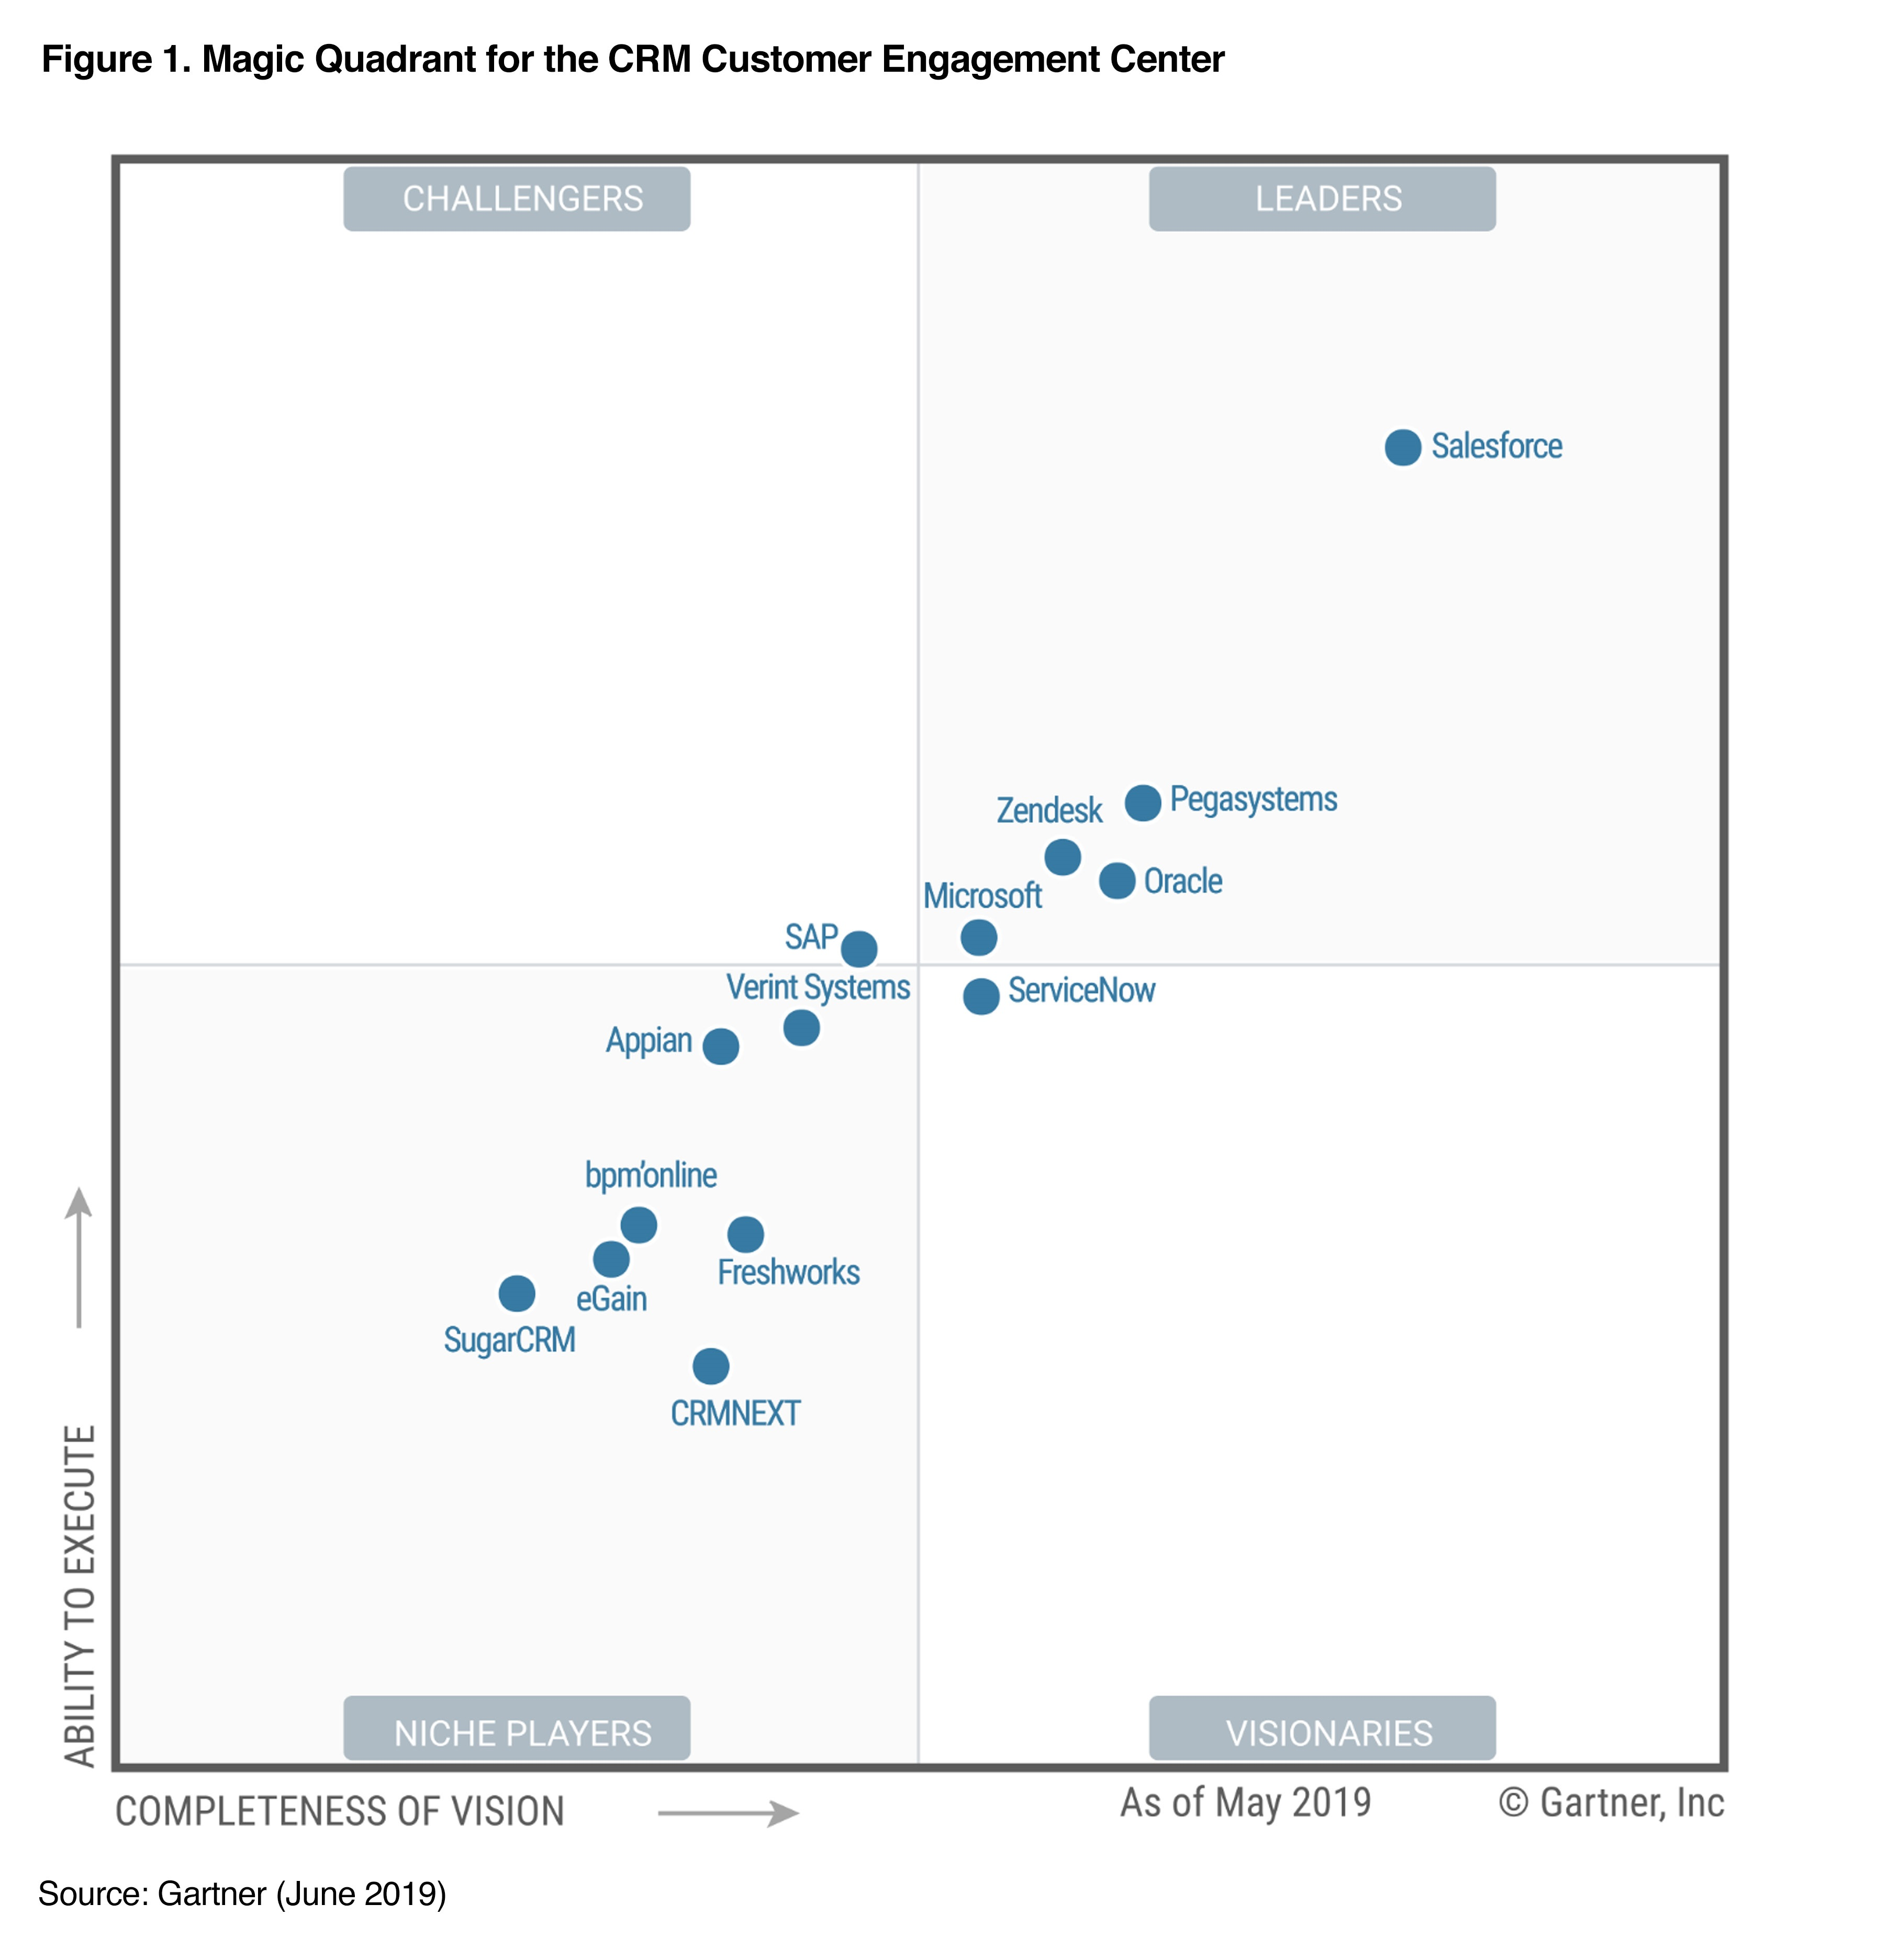 Rapport Magic Quadrant 2019 de Gartner sur les centres CRM